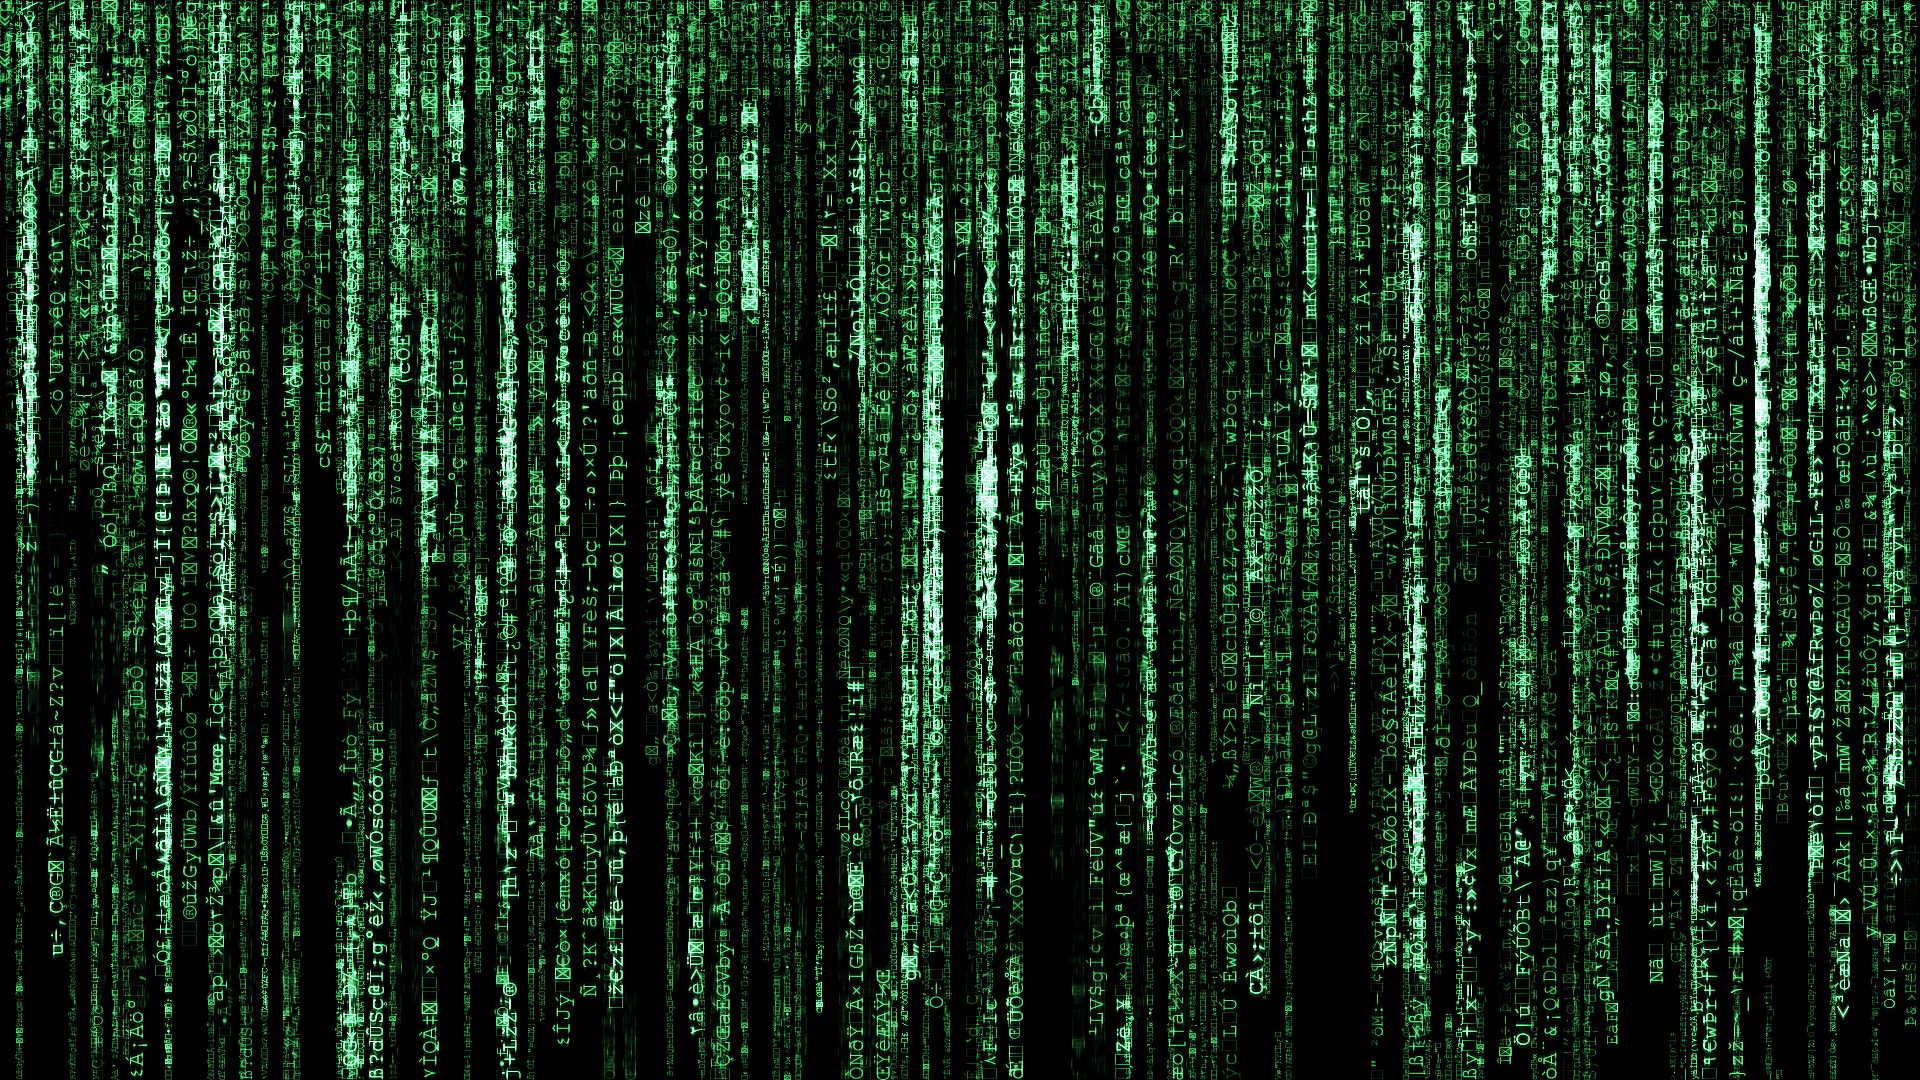 Matrix background by Ali1182 on DeviantArt